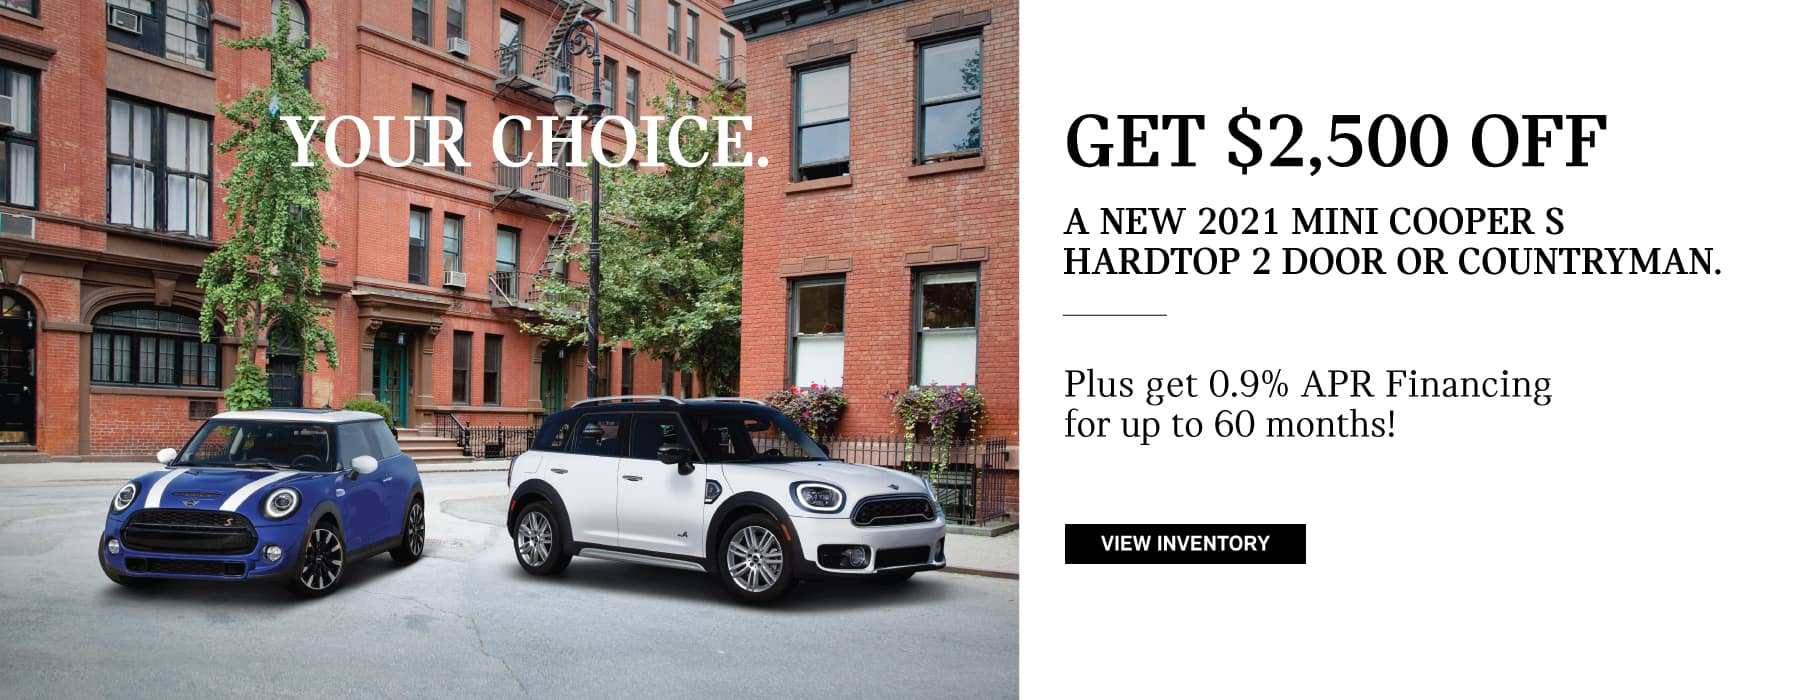 Hardtop/Countryman Finance offer: Your Choice – Get $2,500 off a 2021 MINI Cooper S Hardtop 2 Door or Countryman. And 0.9% APR Financing for up to 60 months.